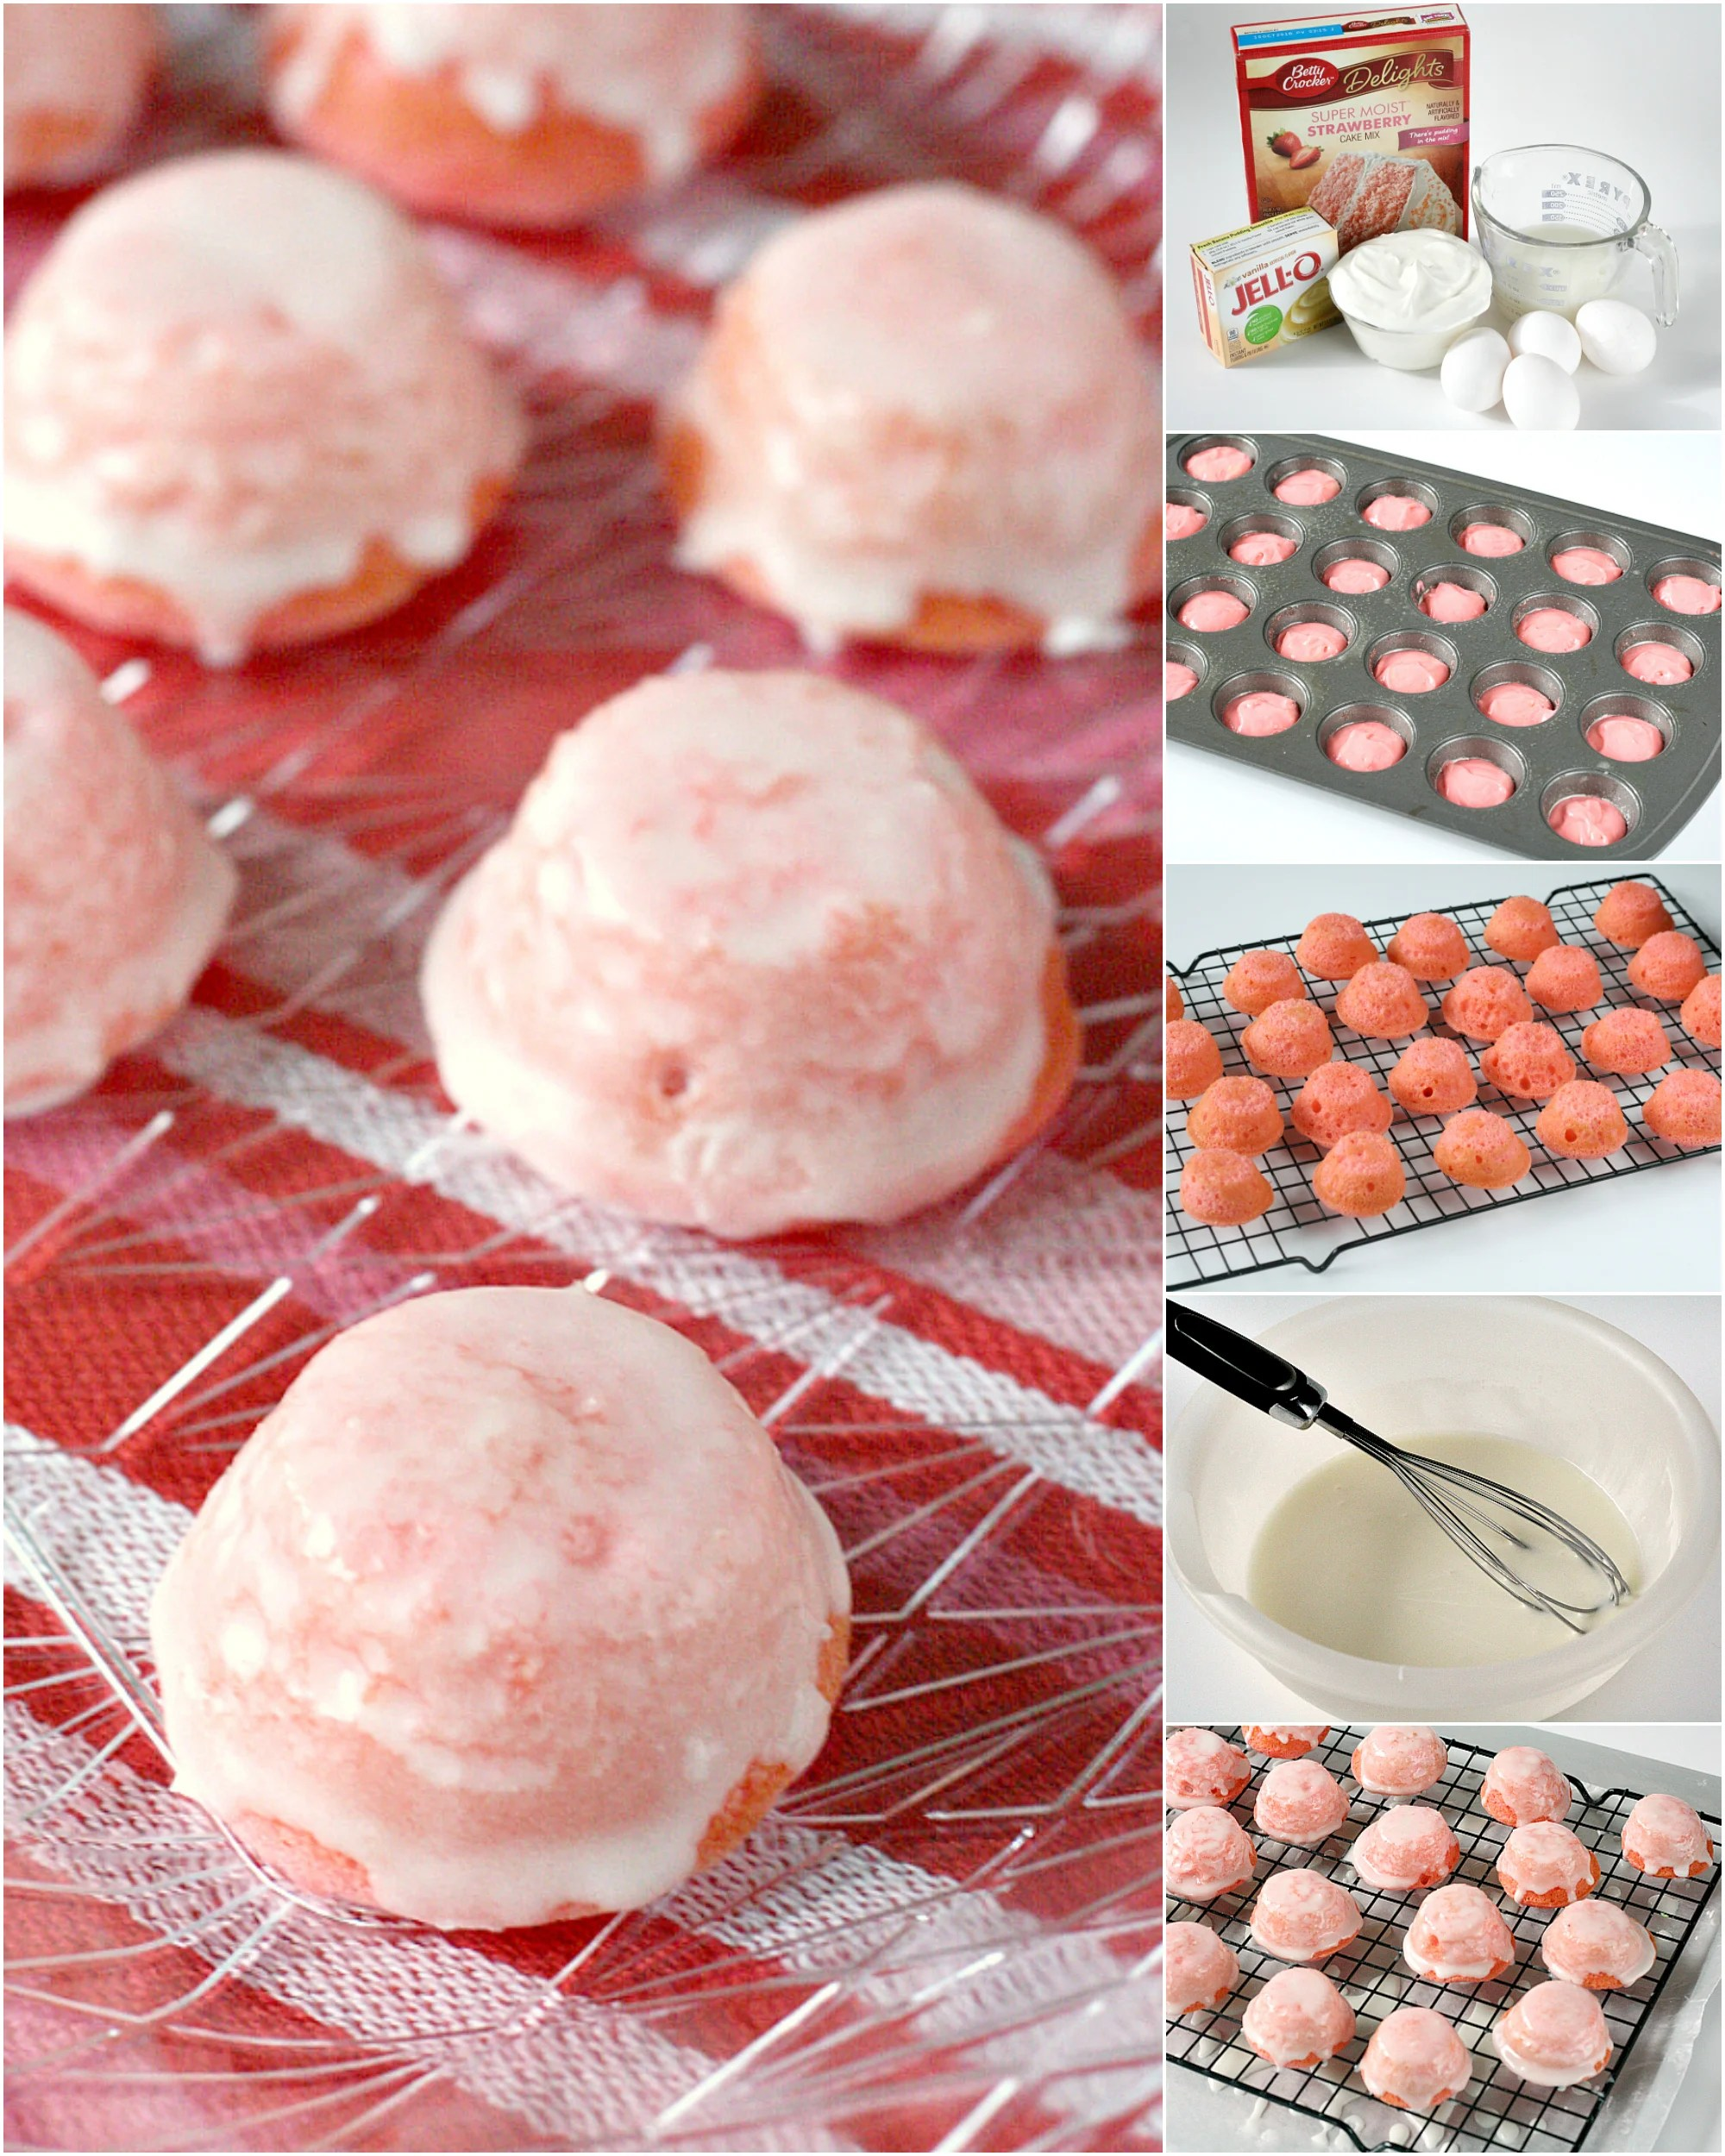 Glazed Mini Strawberry Cupcakes are delicious bite-sized treats that start with a strawberry cake mix. These mini cupcakes are dipped in a simple strawberry glaze to create a strawberries and cream flavor in an easy strawberry cake mix recipe!